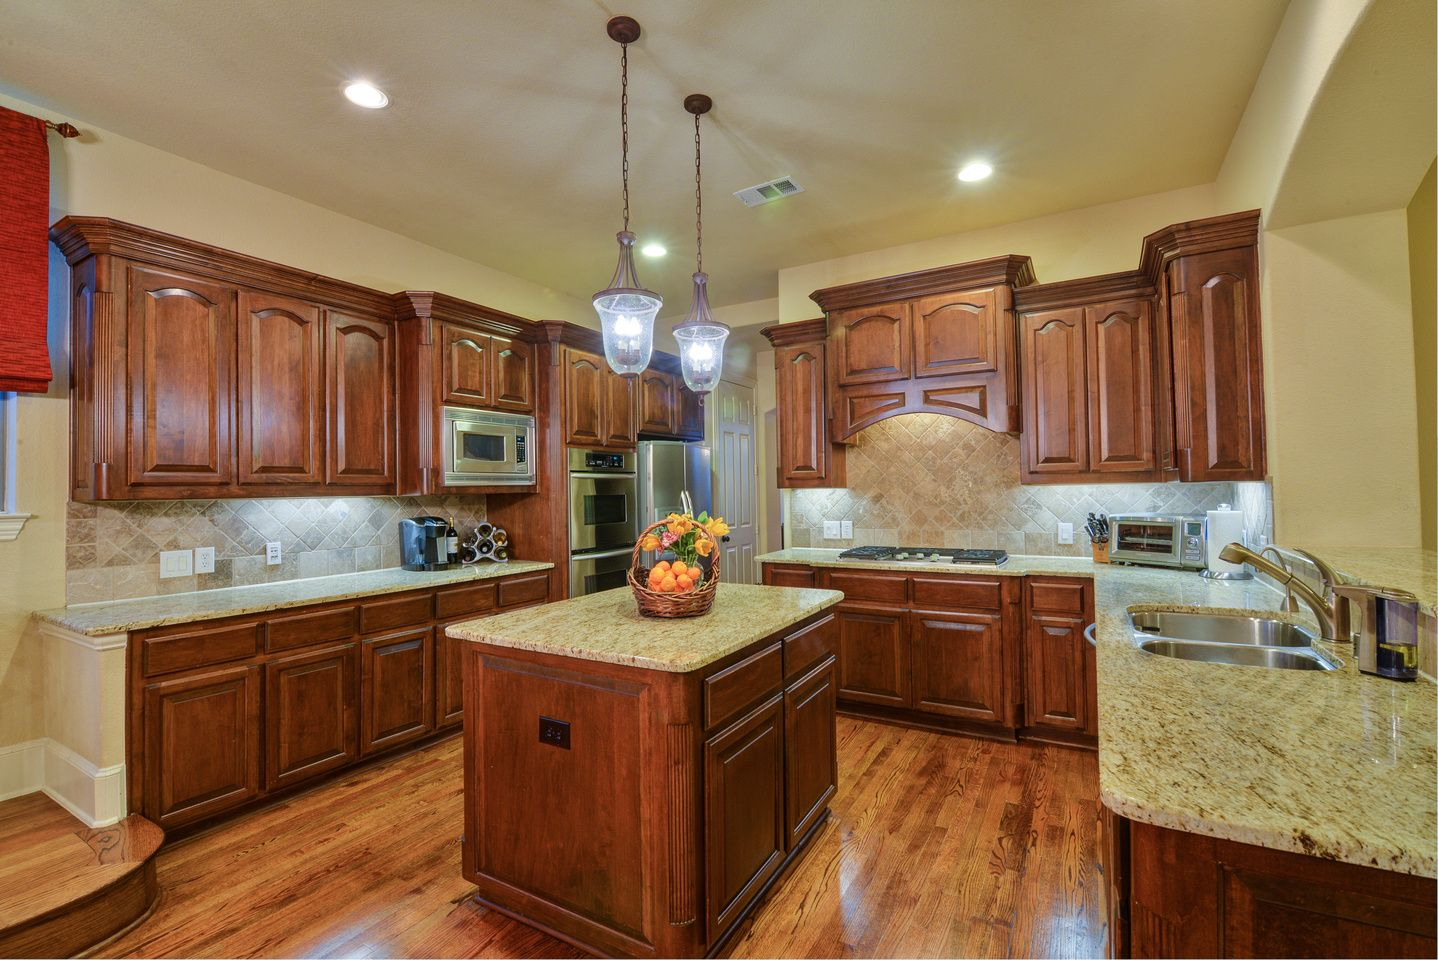 Homes for sale CASTLE HILLS contact Kim 214-402-9200 for a showing